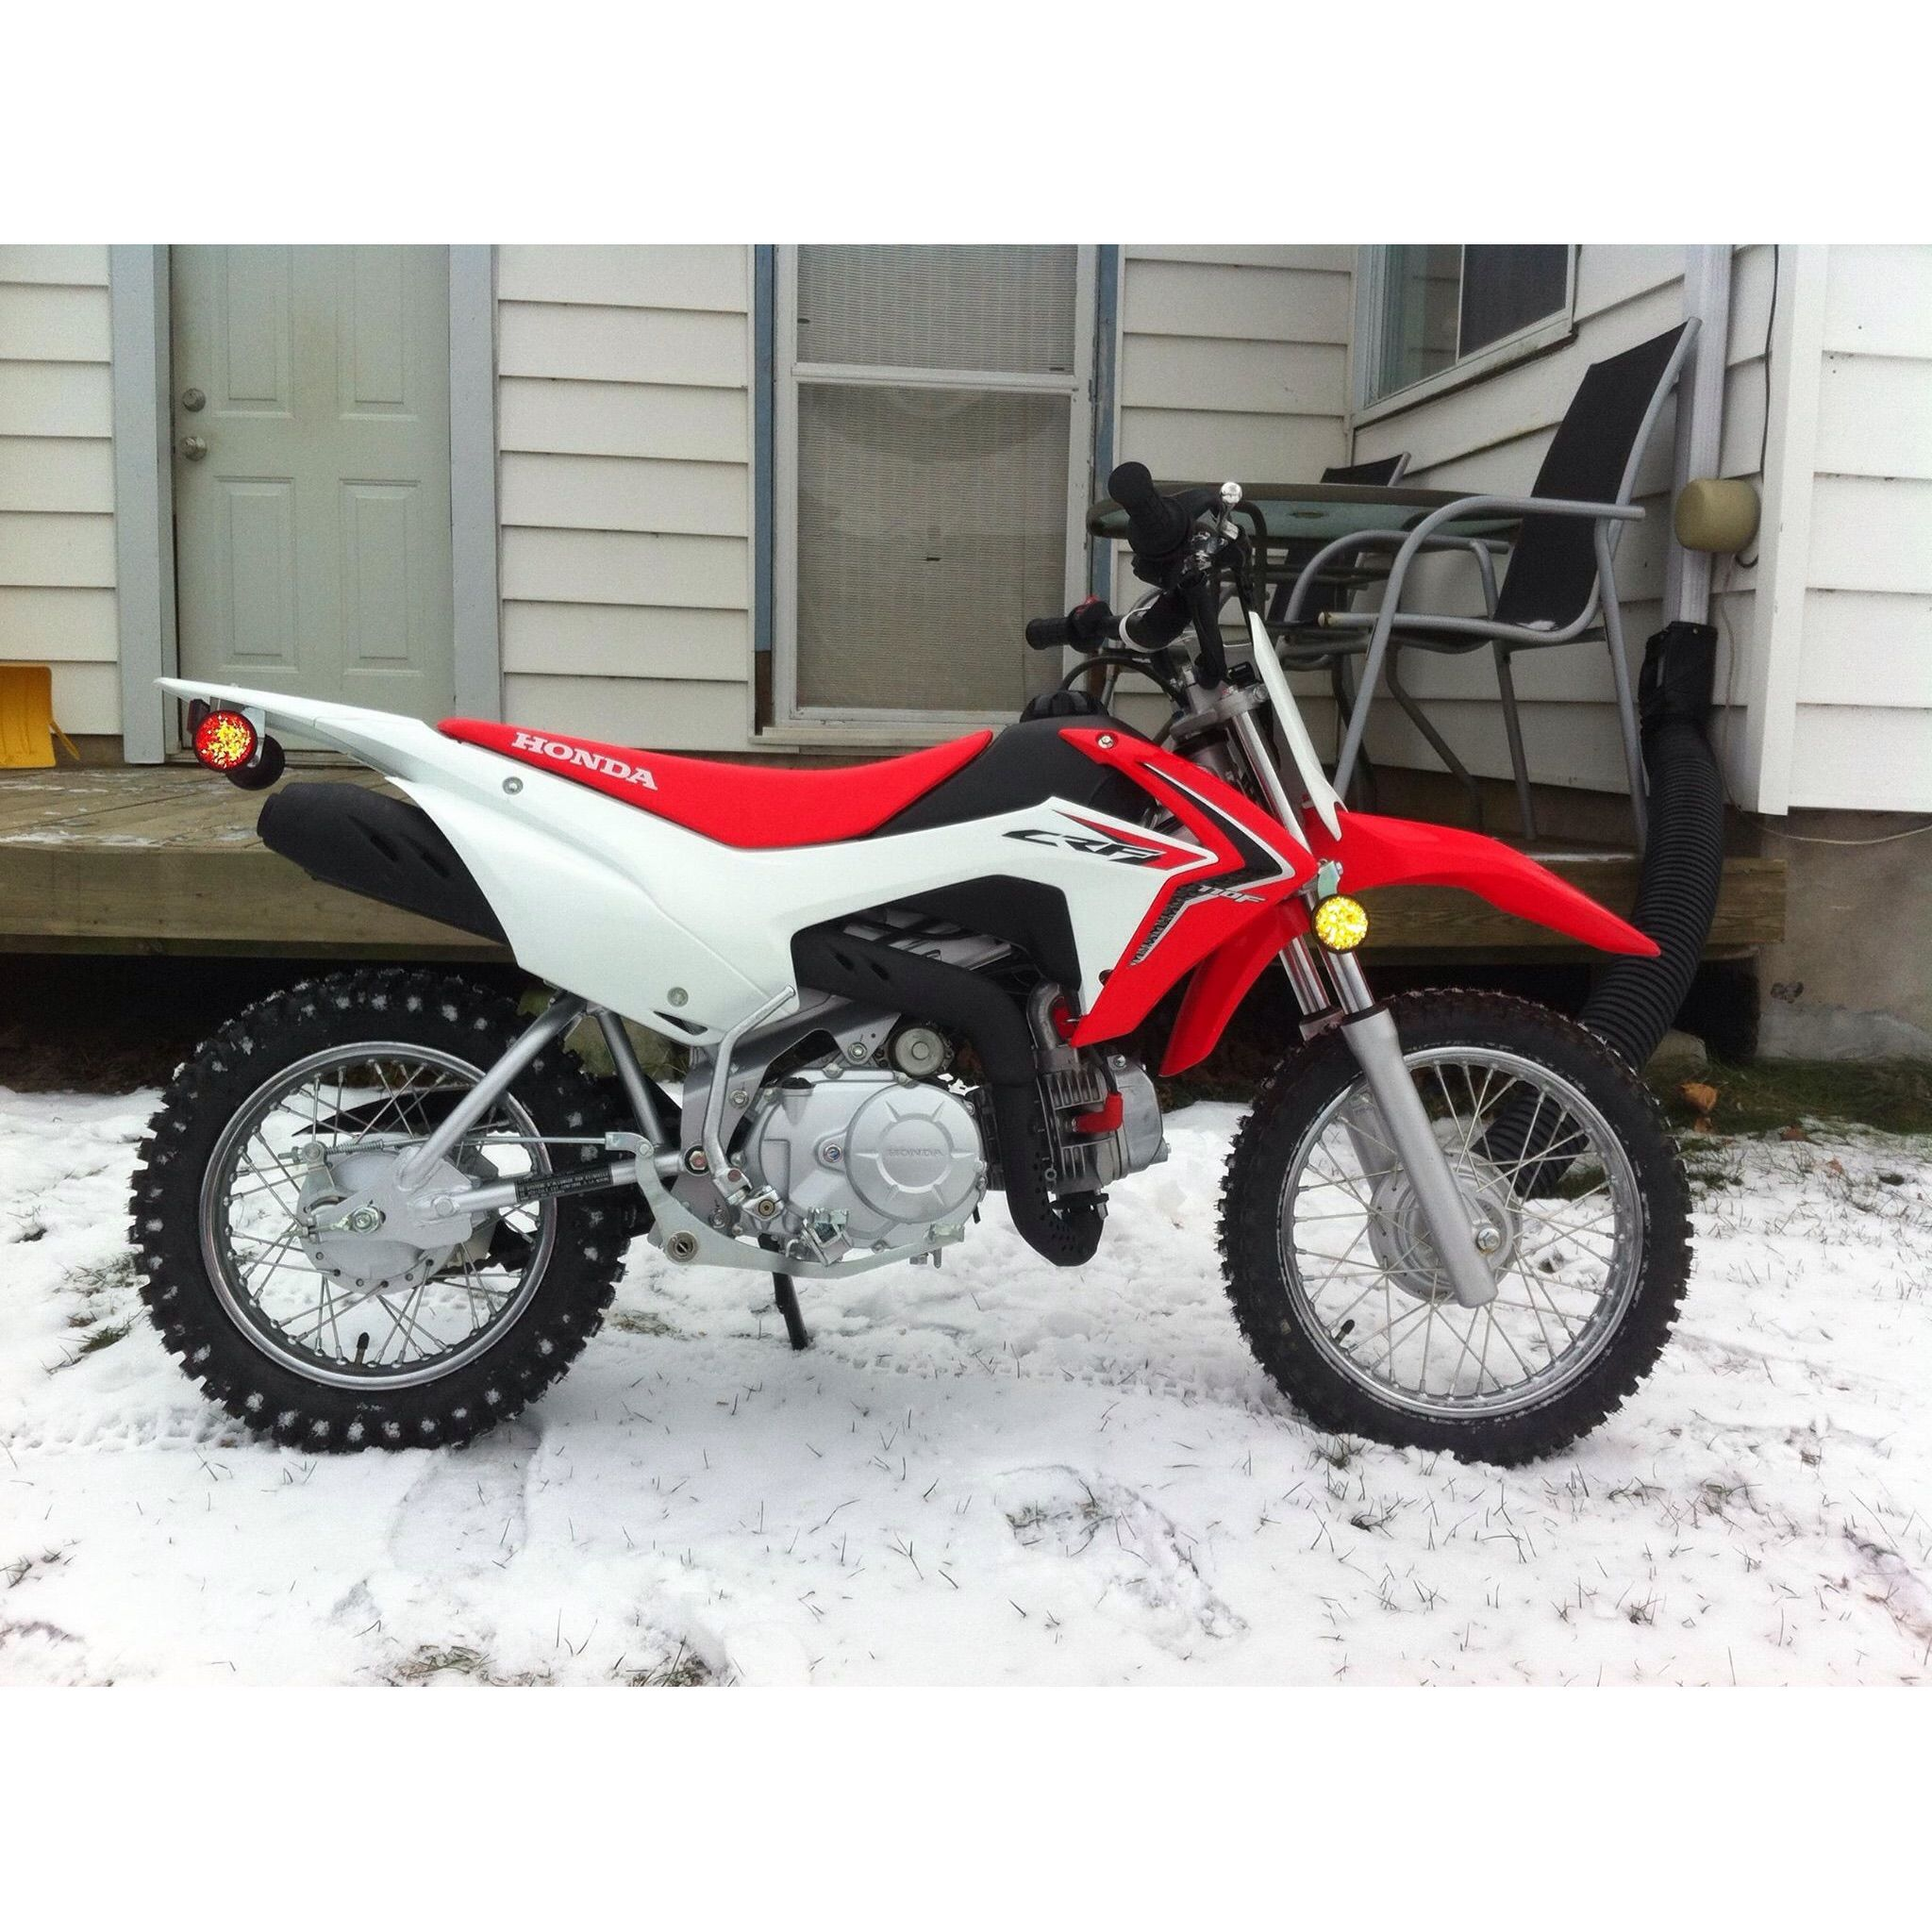 My sweet Honda crf 110 ✊ Dirtbikes, Honda, Mtb Bike, Dirt Bikes